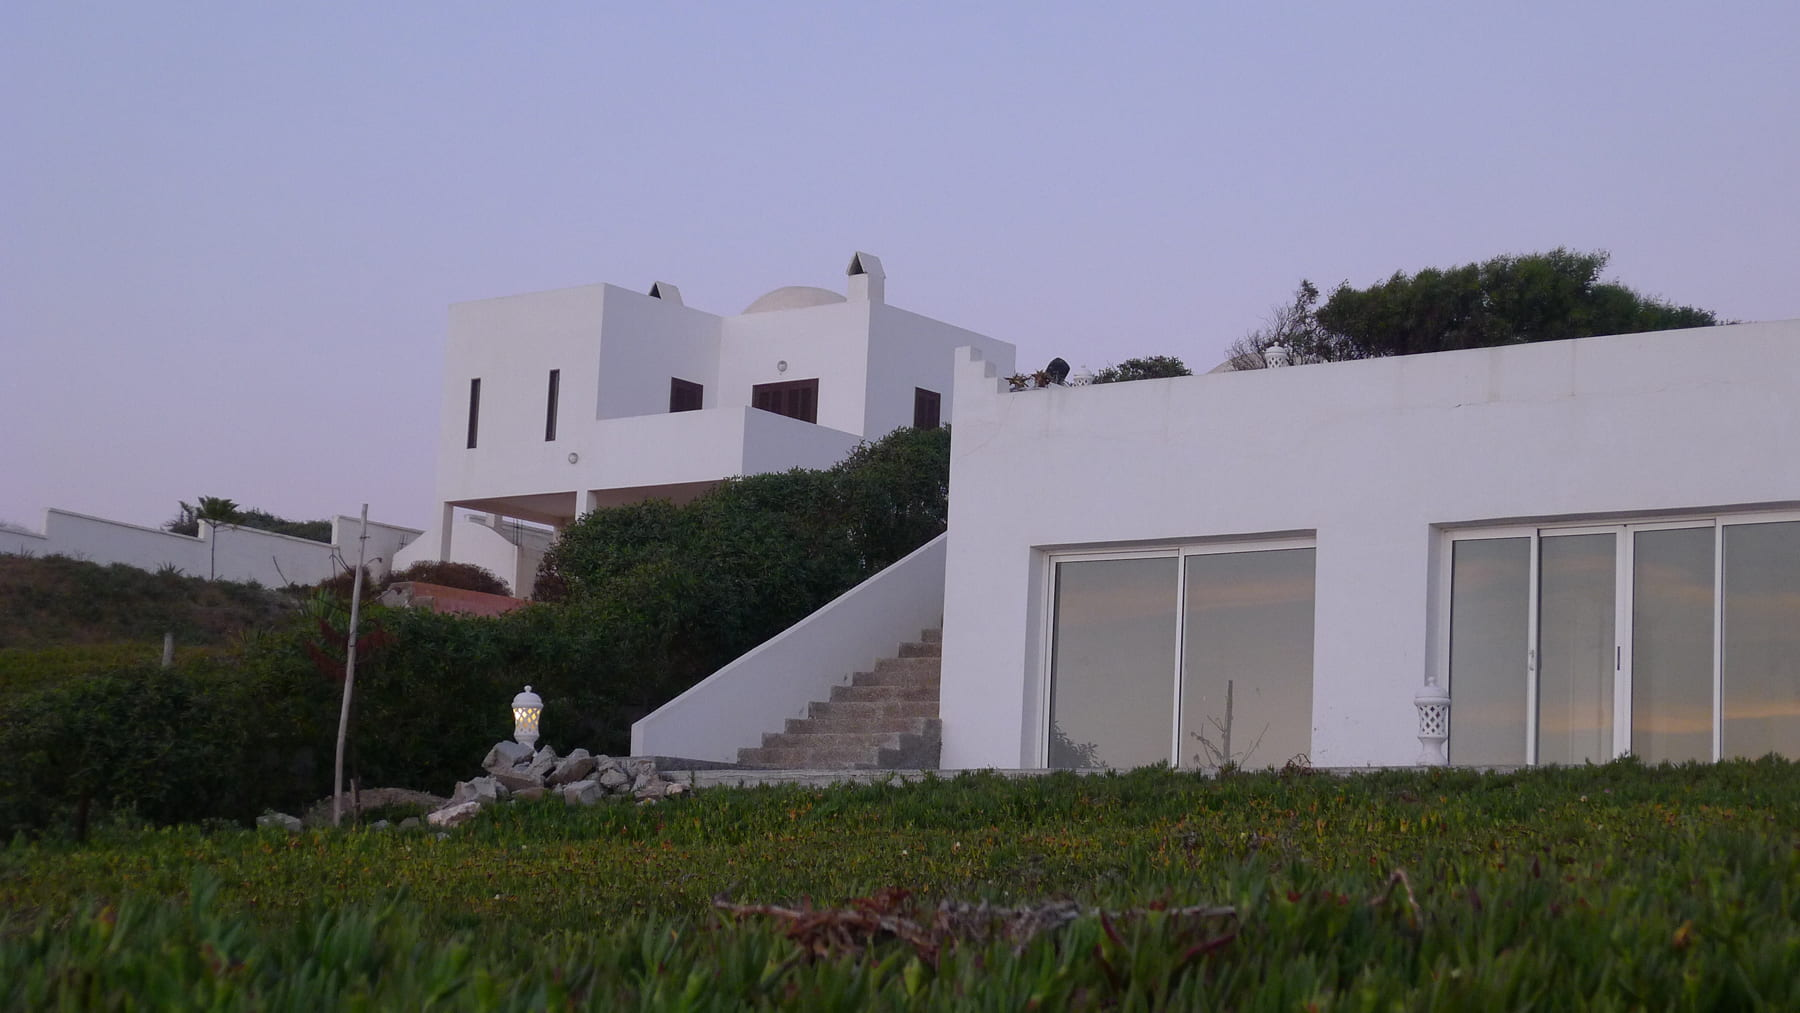 Picture of Ifitry Residence